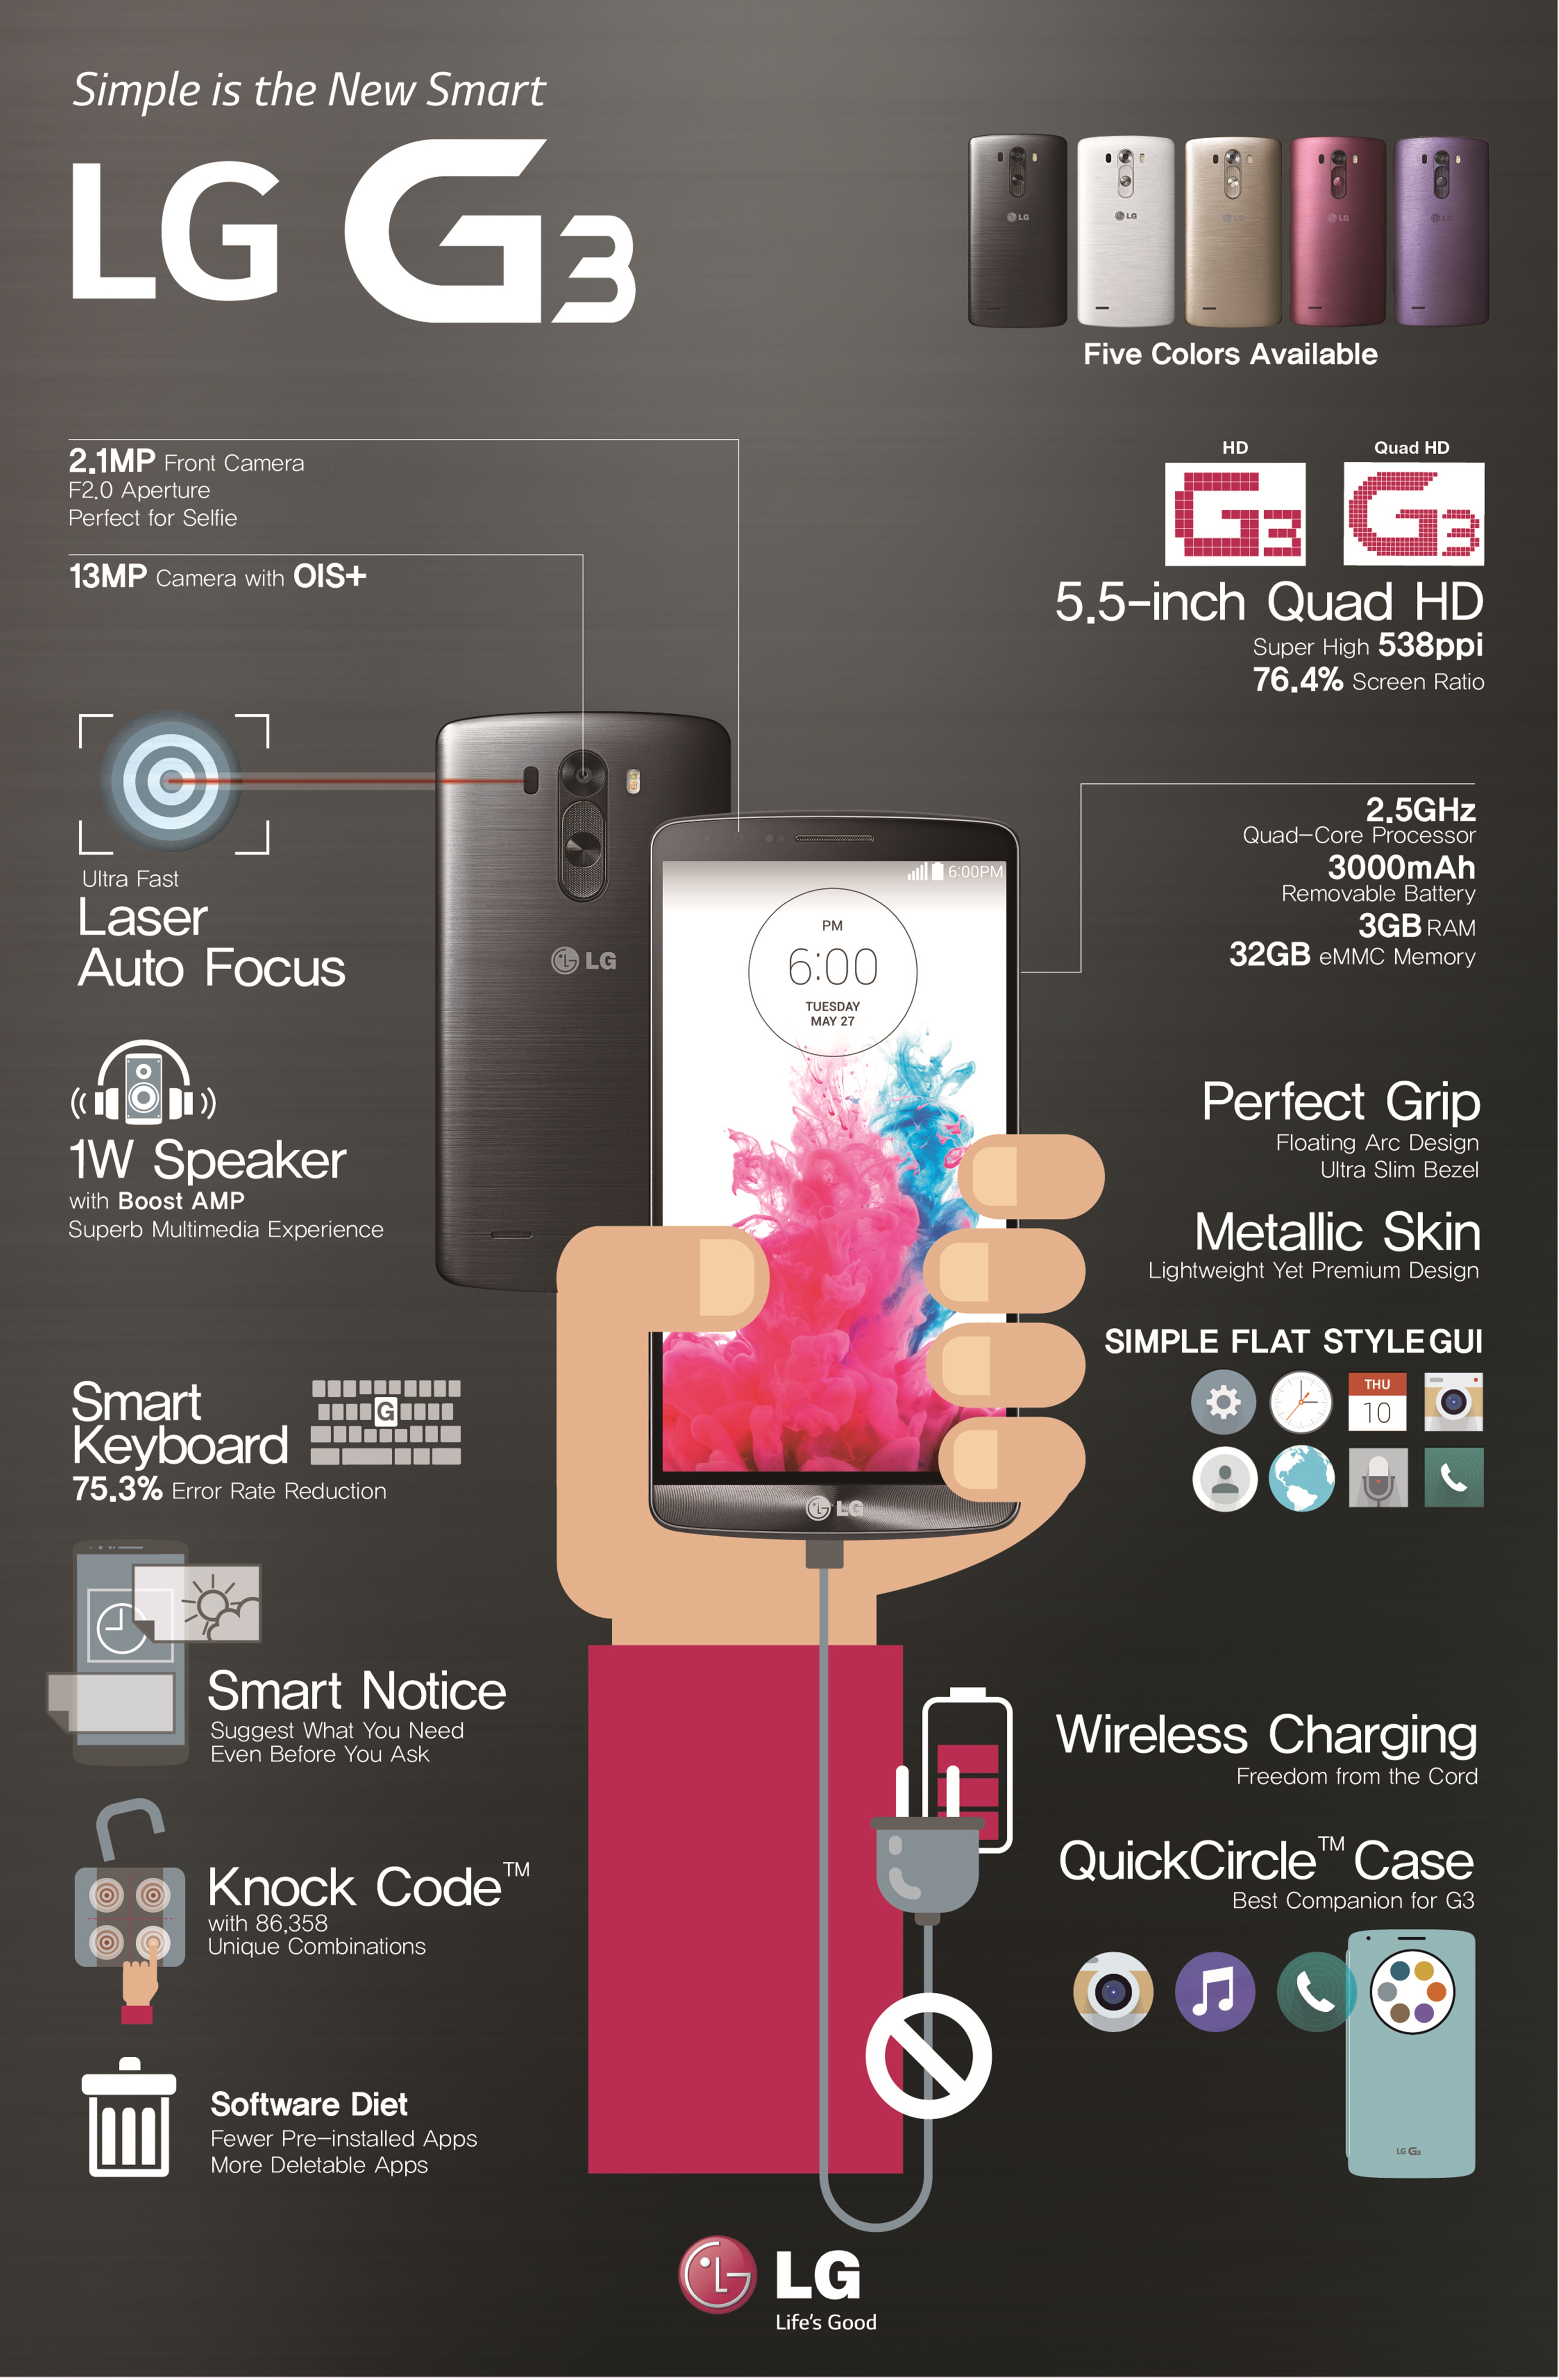 An infographic explains the features of LG G3